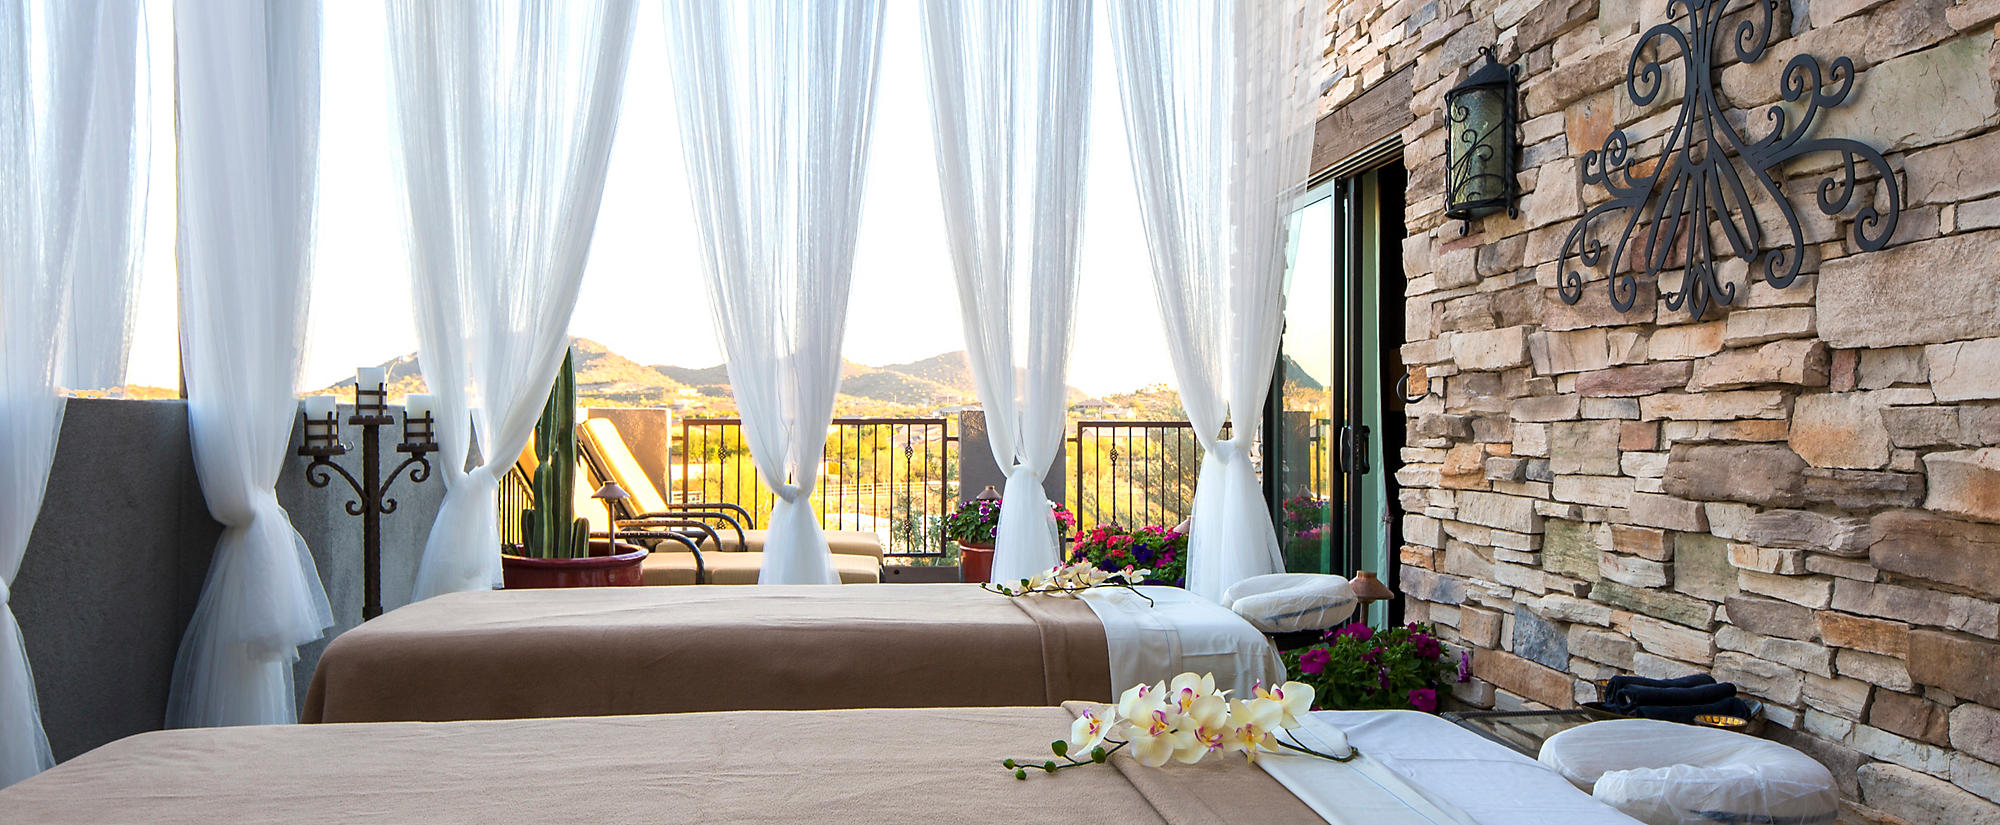 Cibola Vista Resort and Spa outdoor massage